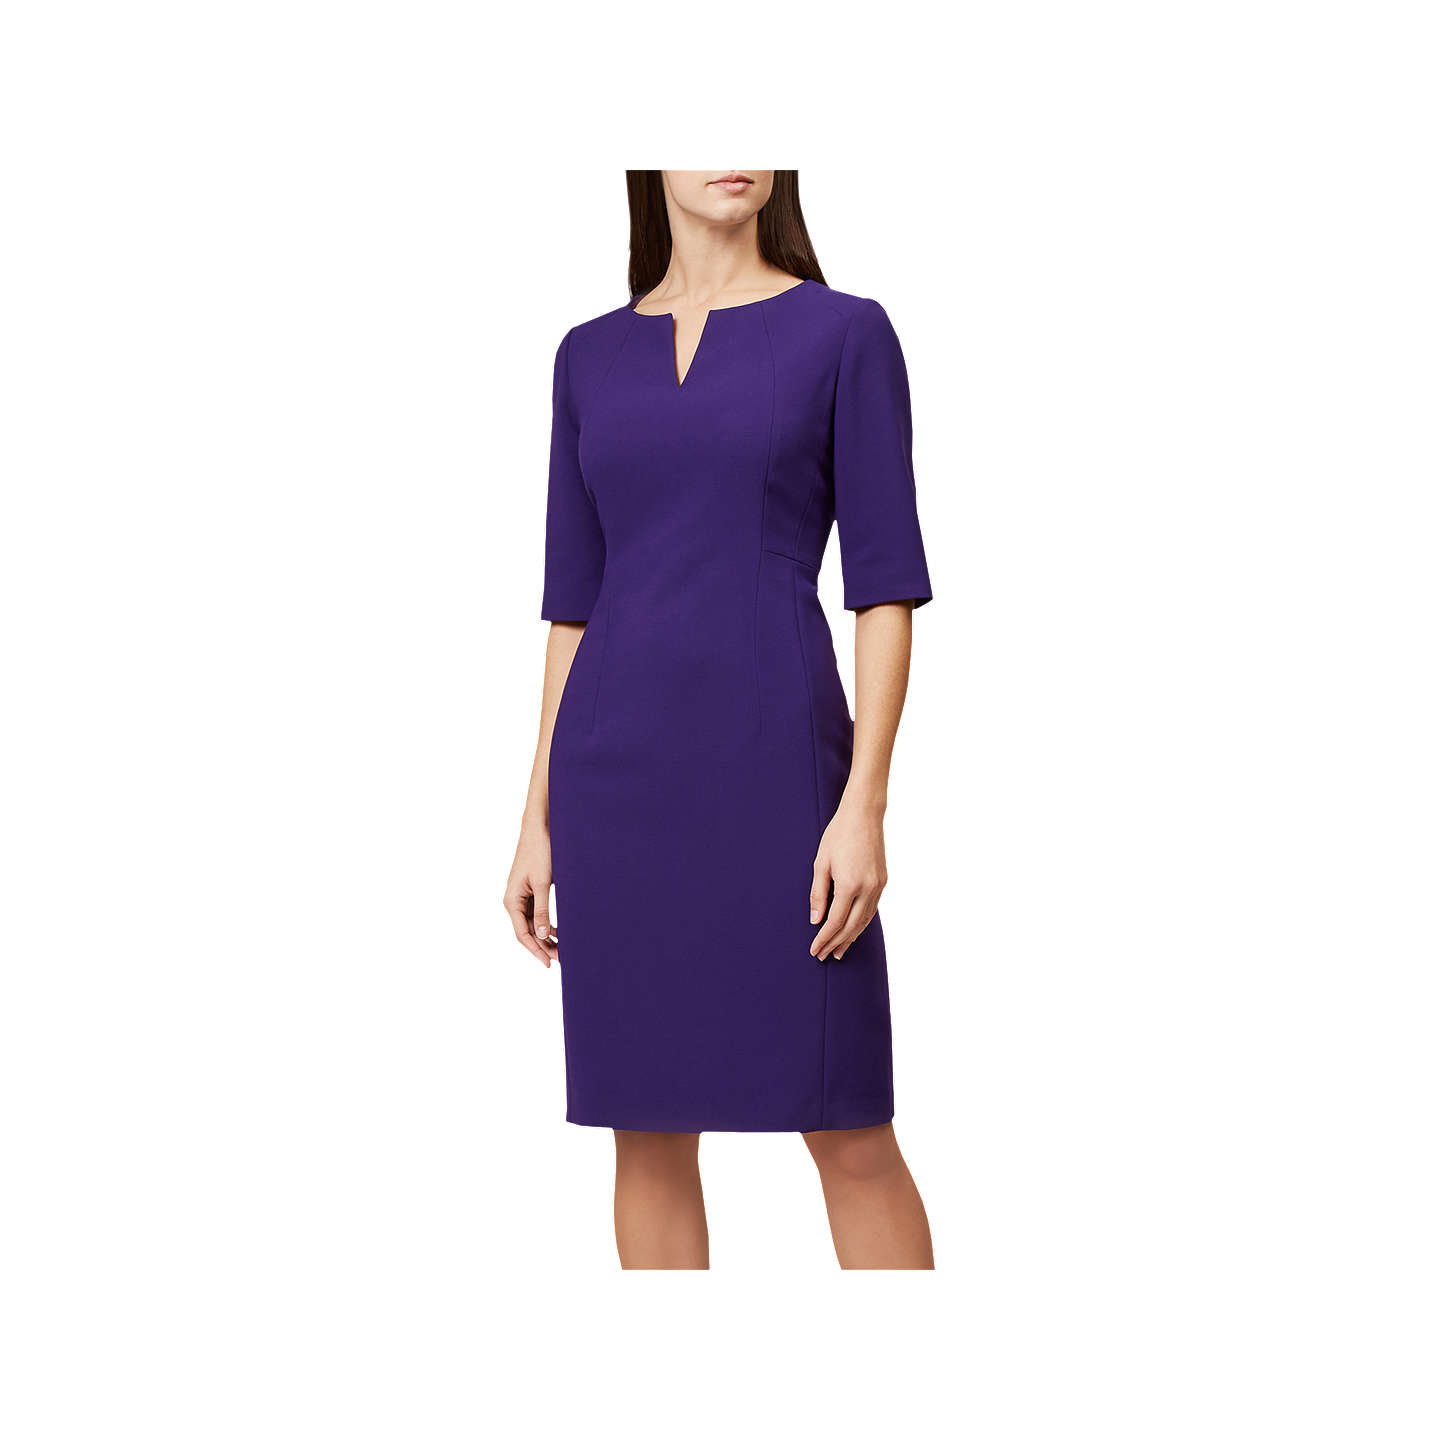 Hobbs Eimear Short Sleeve Dress, Purple at John Lewis